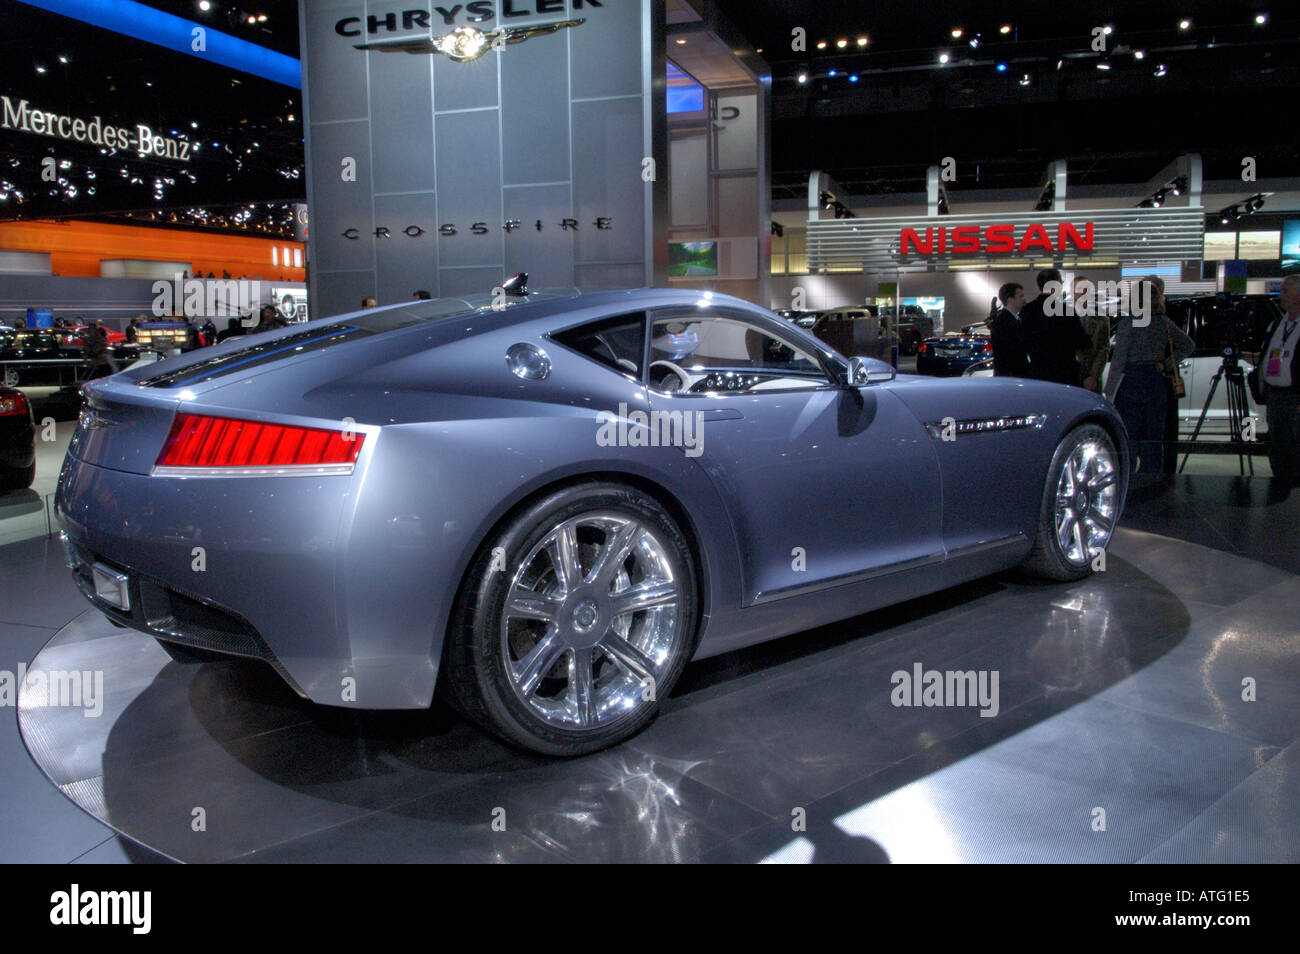 Chrysler Firepower concept car at the North American International ...